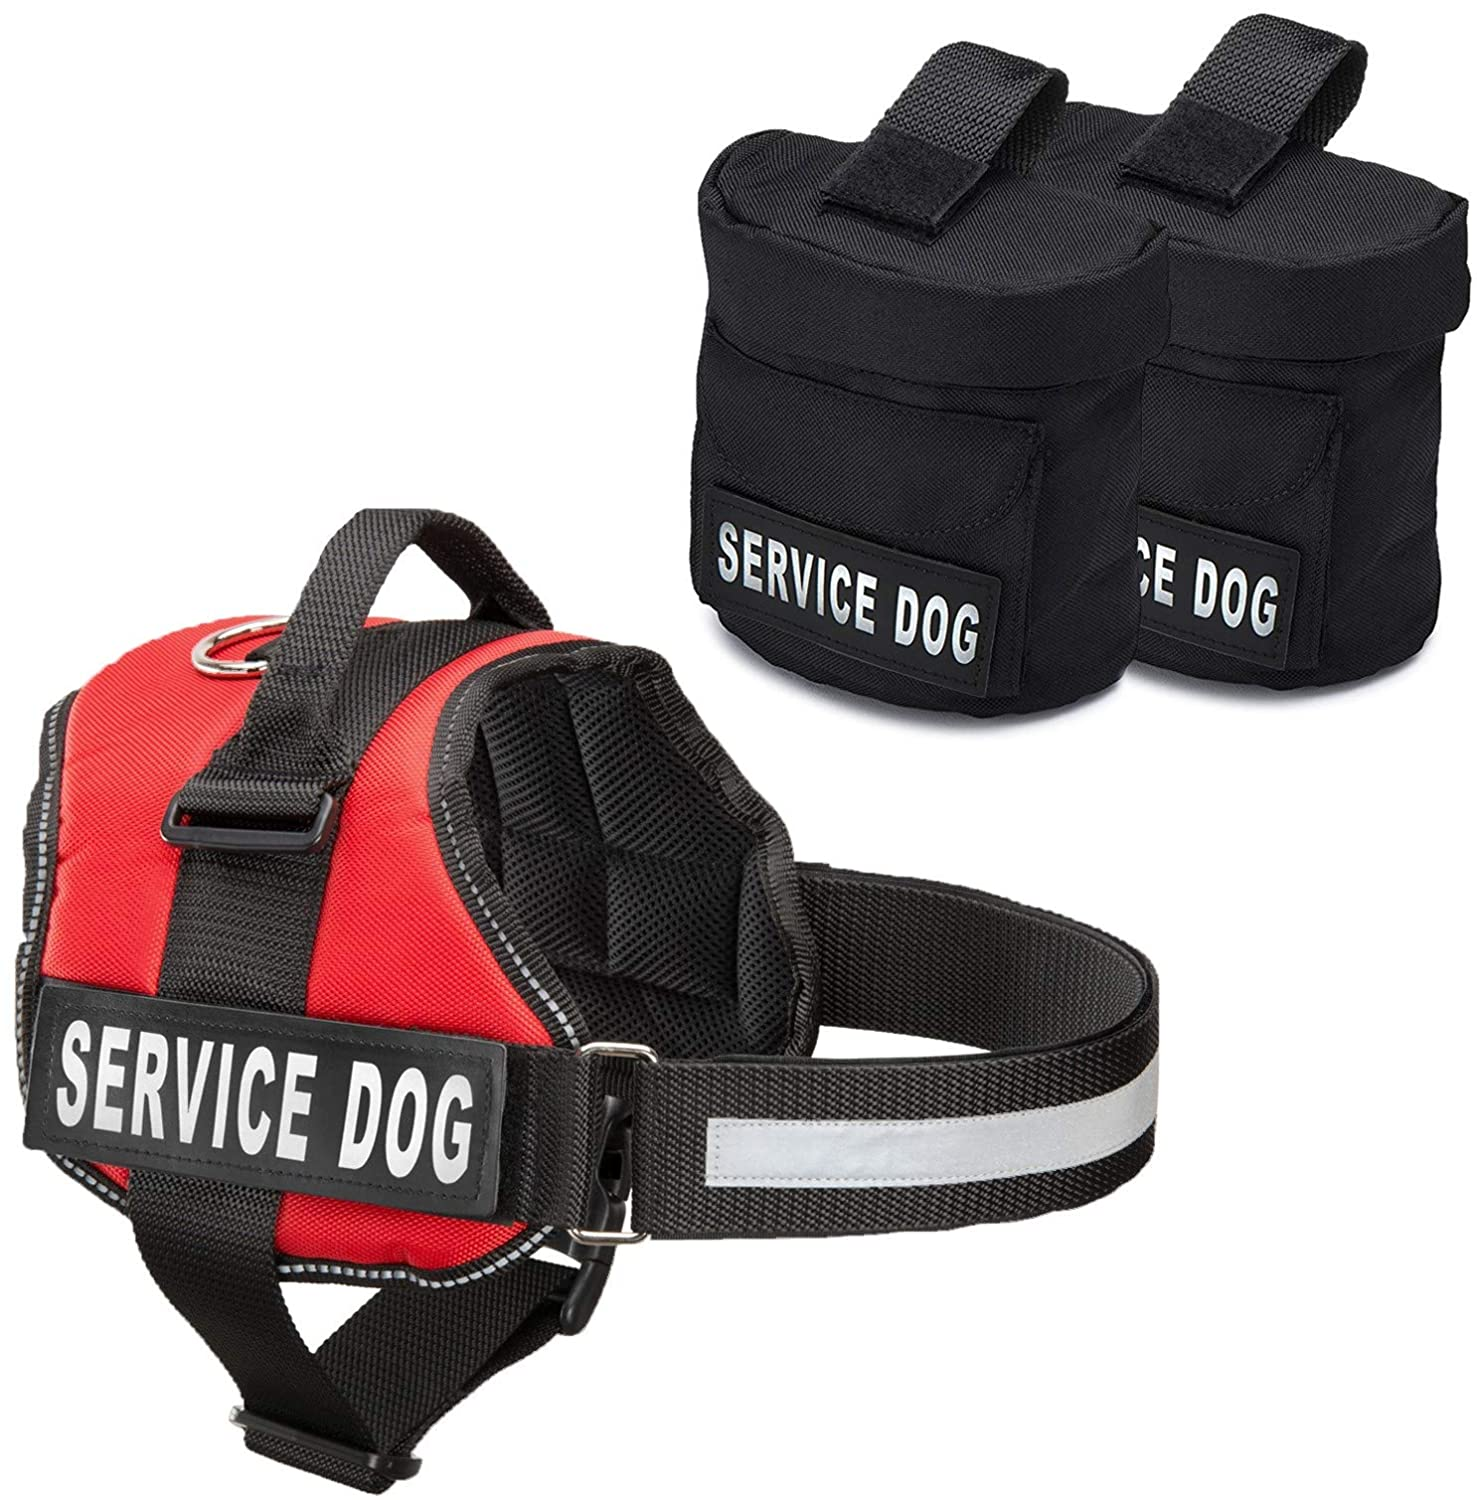 Bright Red fits girth 2733.5\Service Dog Backpack Harness w  2 Removable Saddle Bags PLUS 4  SERVICE DOG  Velcro Patches, by Industrial Puppy (Large, Bright Red)